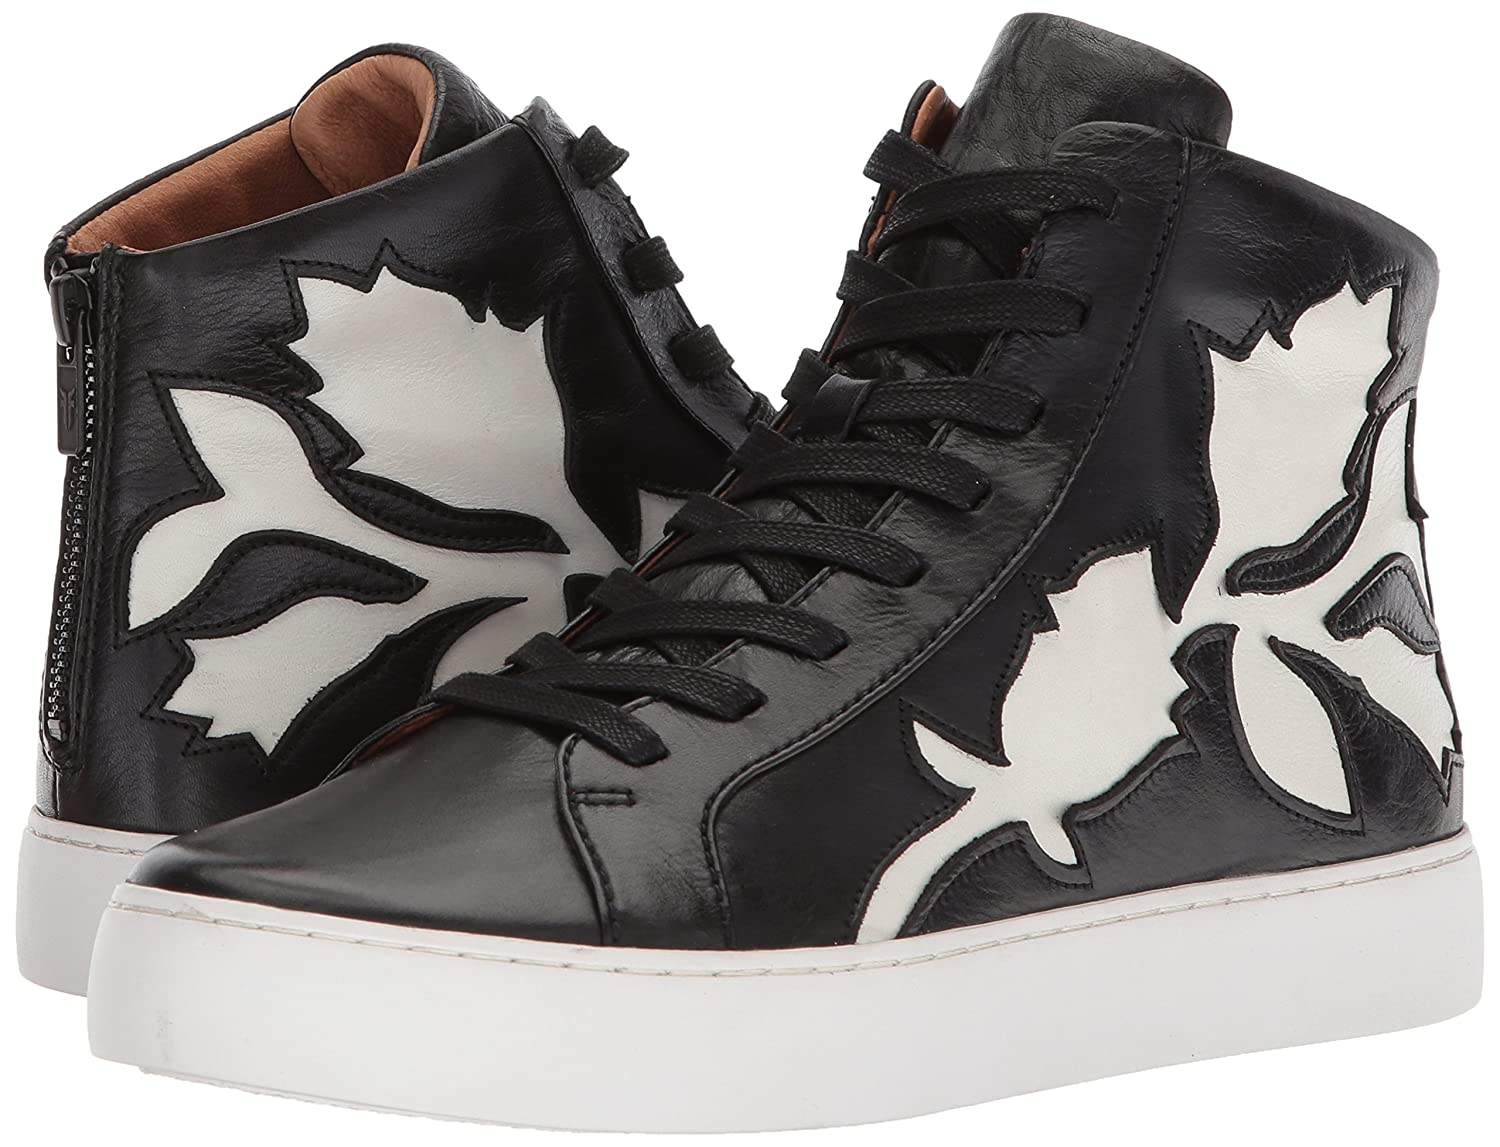 FRYE Women's Lena Flora B(M) High Sneaker B07215RLBH 9.5 B(M) Flora US|Black 4be0df